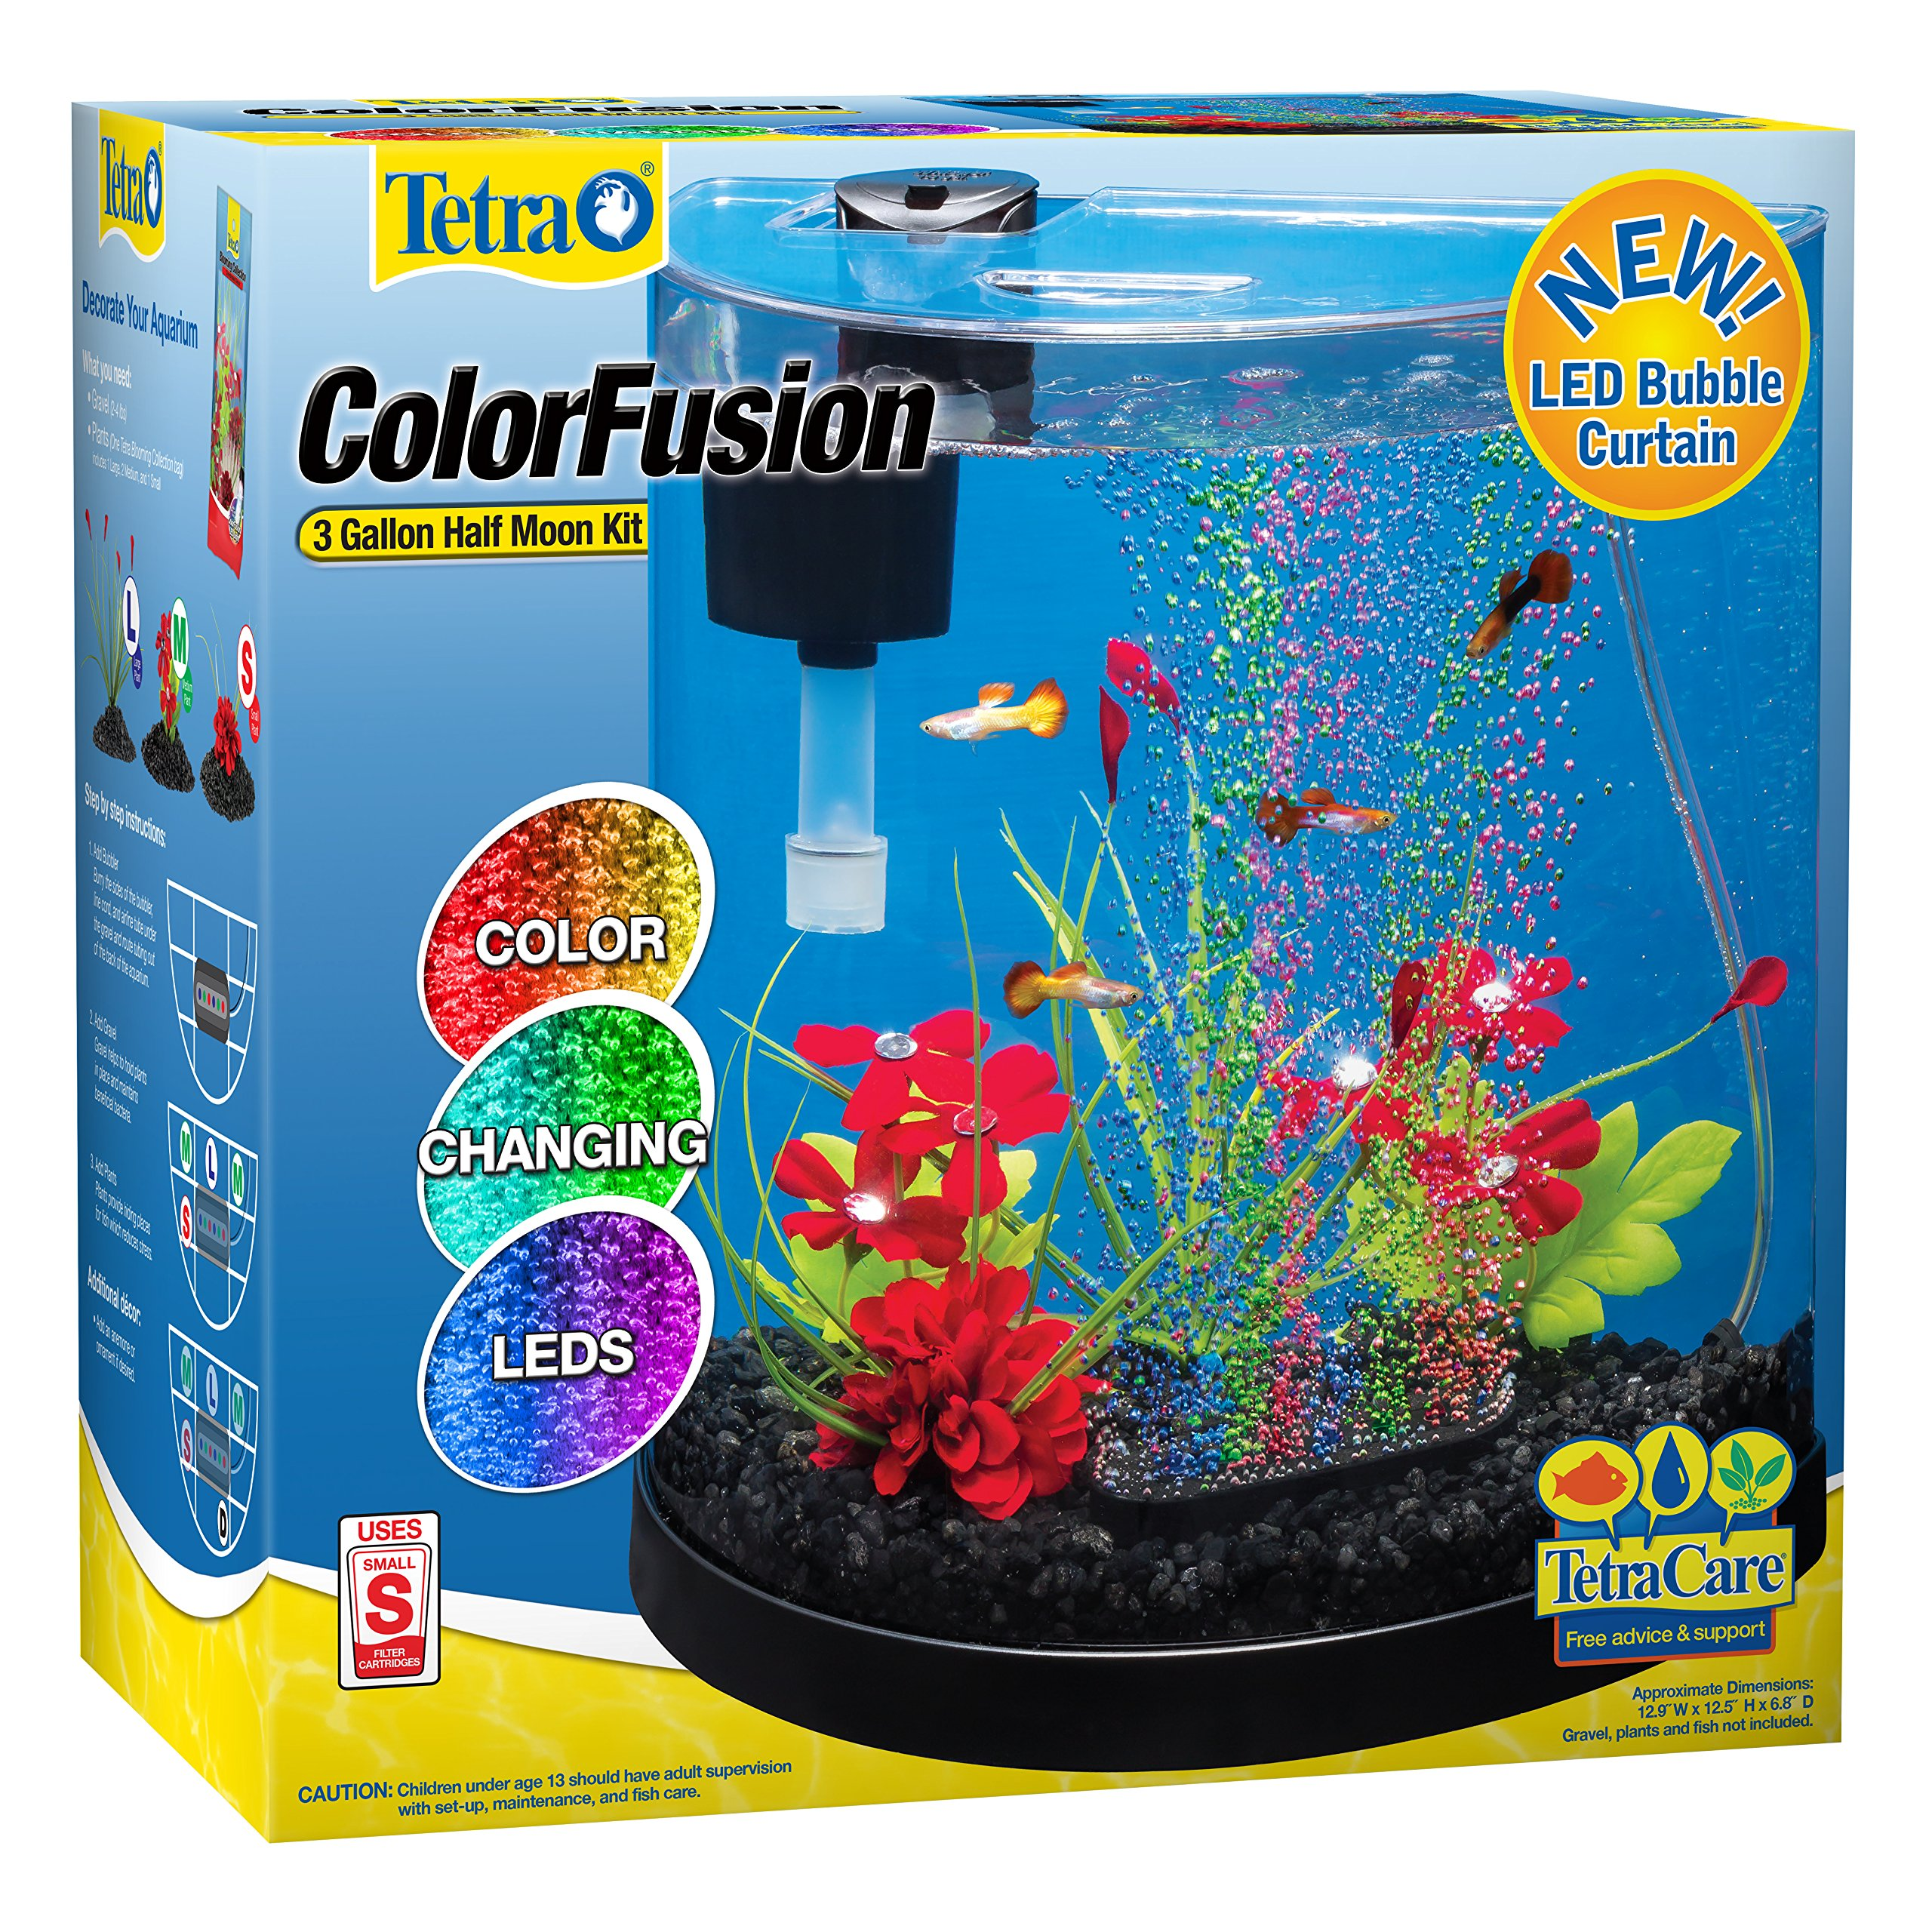 Tetra ColorFusion LED Half Moon Aquarium Kit, 3 Gallons by Tetra